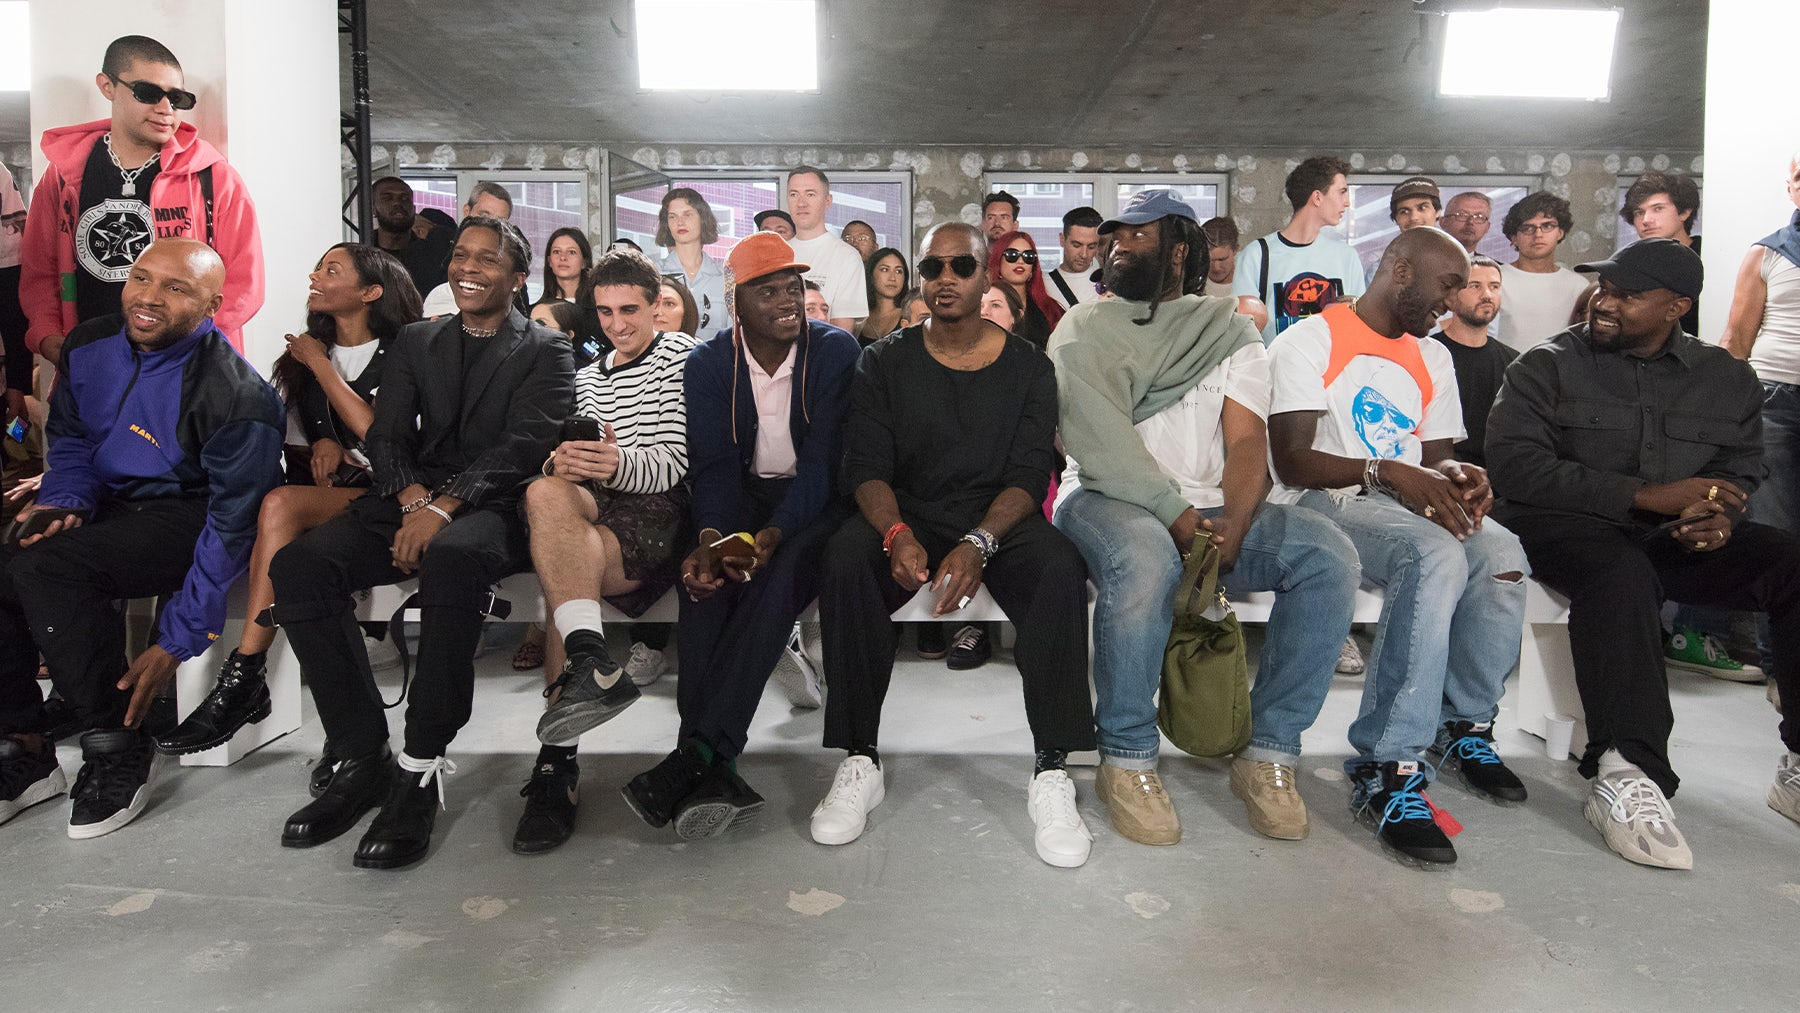 From left: Matthew Henson, Fanny Bourdette-Donon, A$AP Rocky, Elia Fornari, A$AP Nast, Samuel Ross, Tremaine Emory, Virgil Abloh and Kanye West at Alyx Paris Men's Fashion Week 2018 show | Source: Courtesy